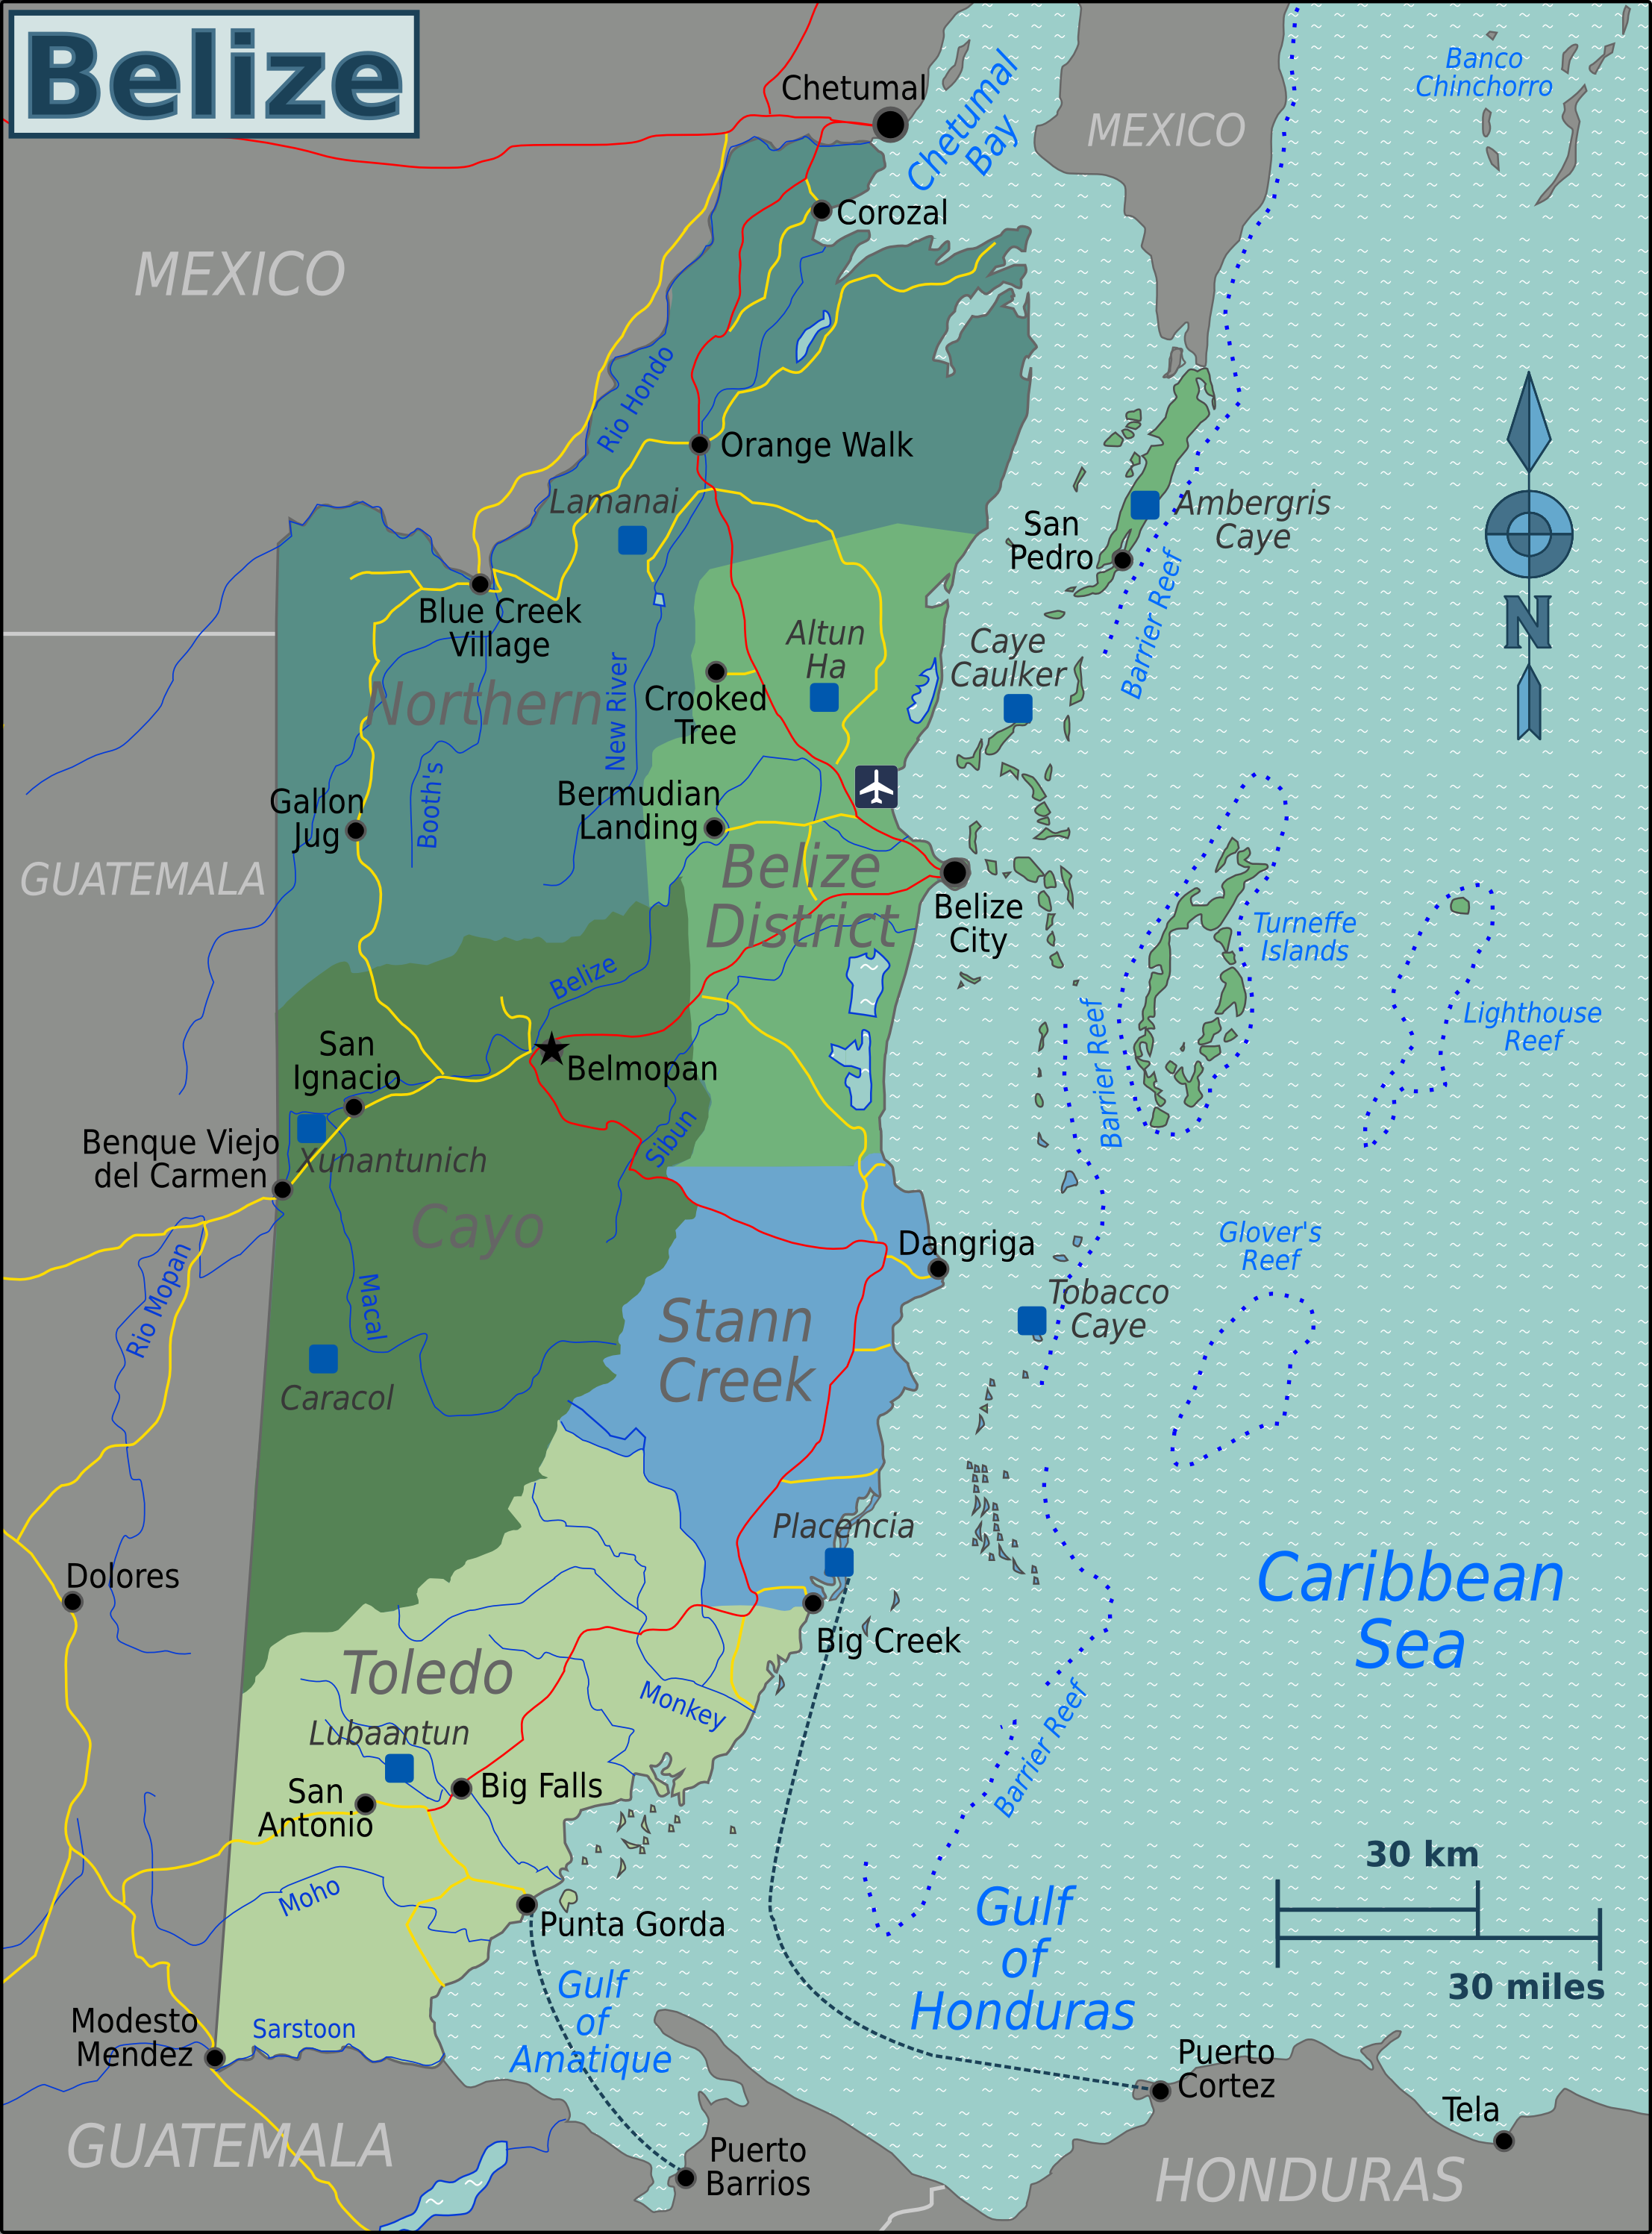 Regional map of Belize | Maps | Pinterest | Belize and Regional